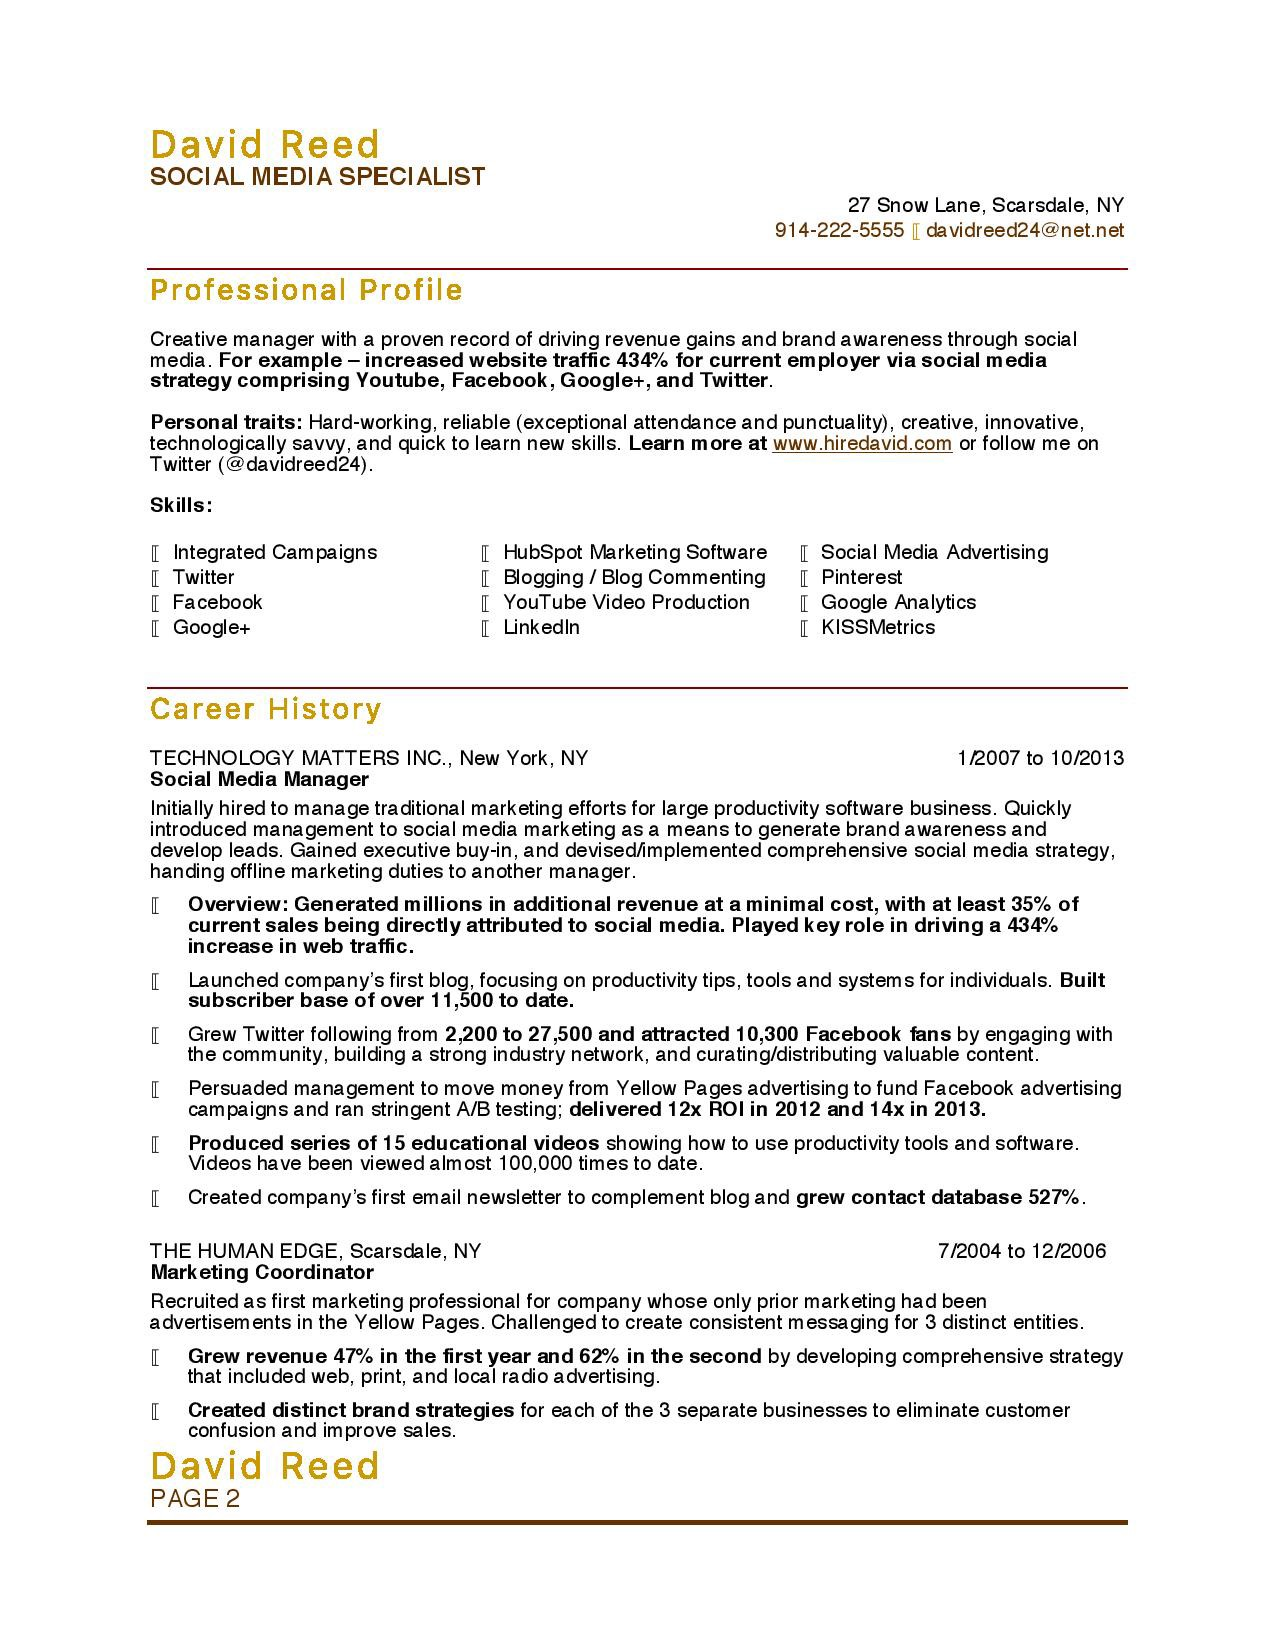 Sample Resume For Social Media Specialist 10 Marketing Resume Samples Hiring Managers Will Notice